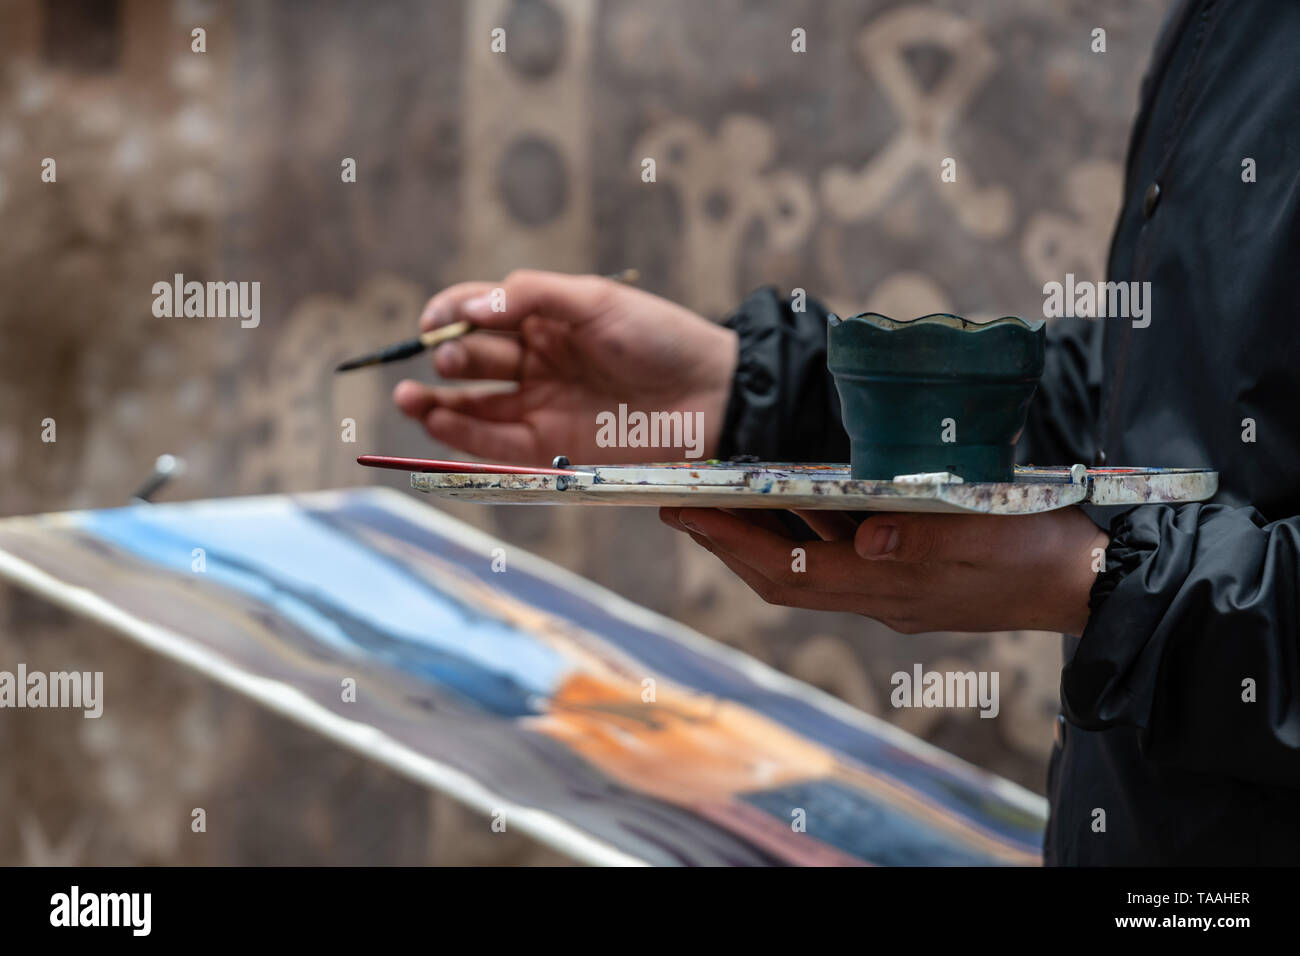 Artists hand with brush and palette painting street scene - Stock Image